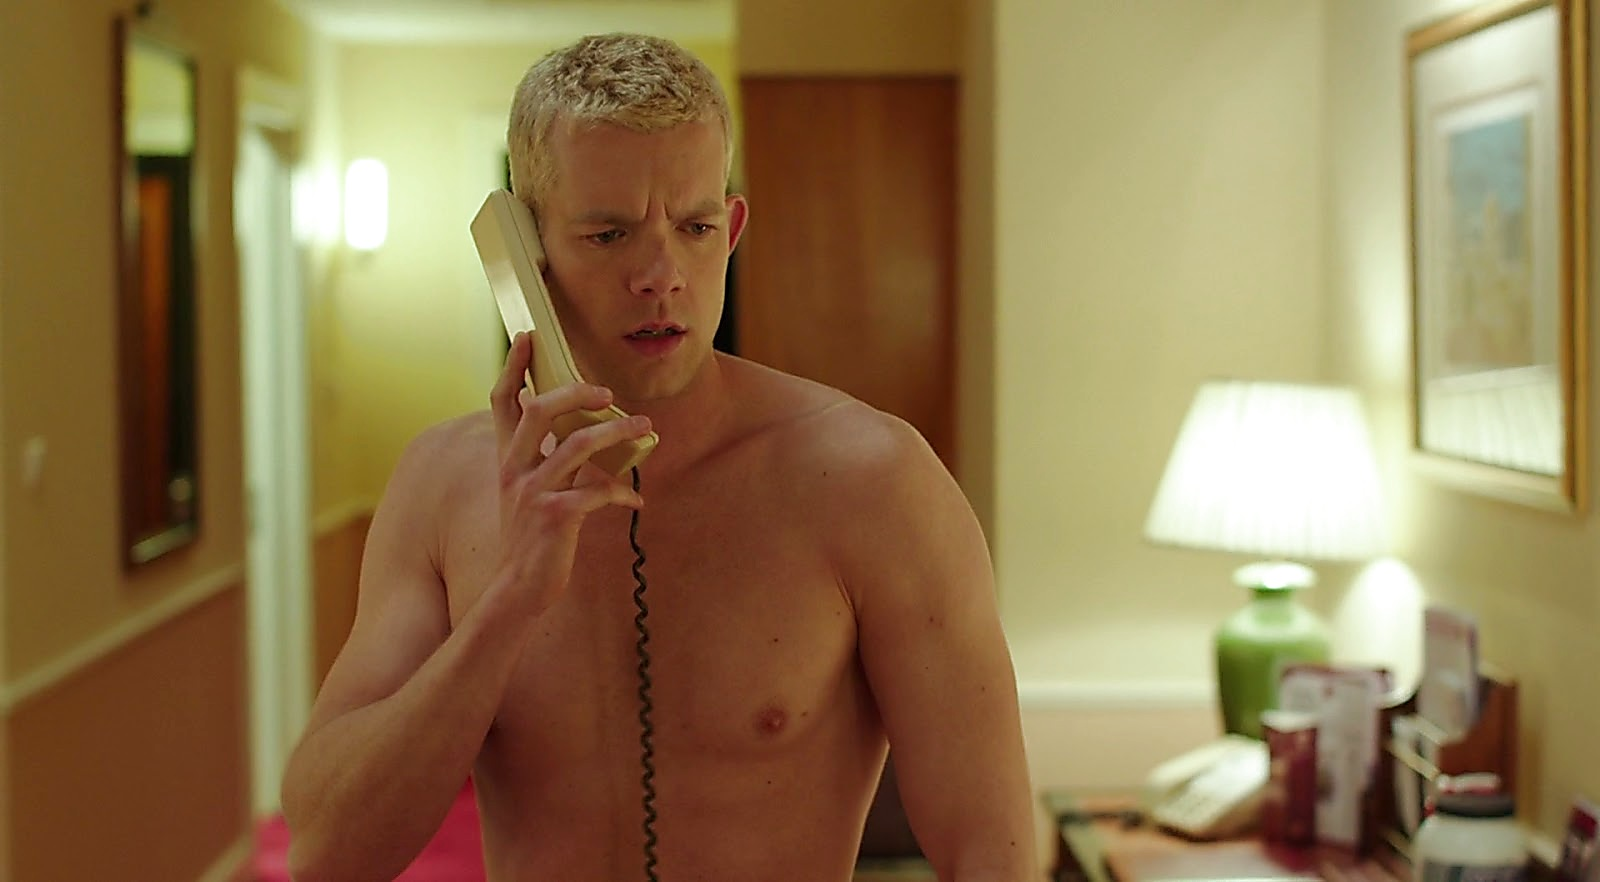 Russell Tovey sexy shirtless scene April 16, 2017, 3pm